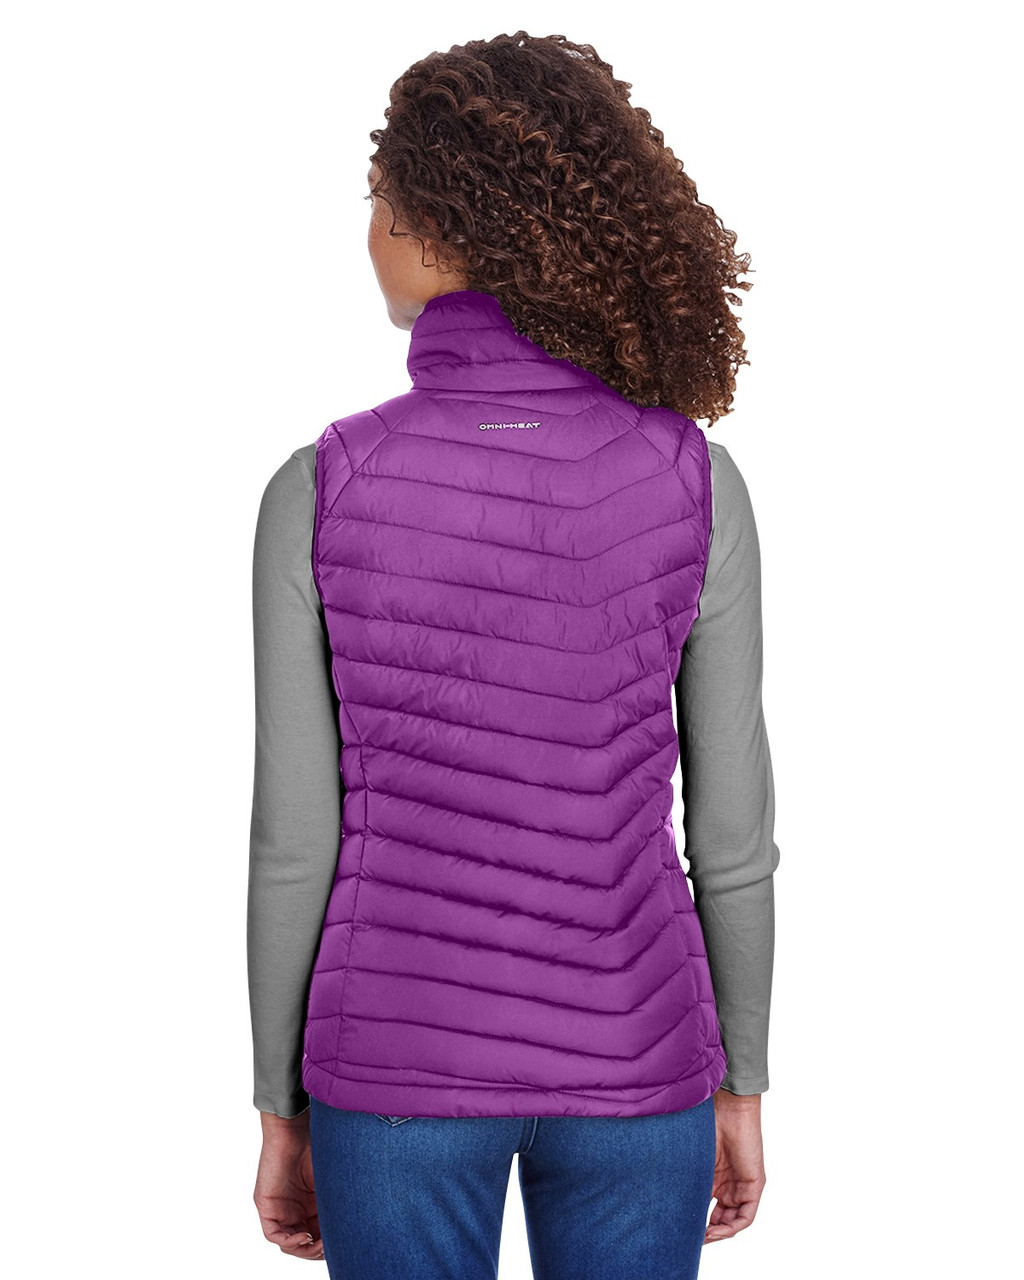 Wild Iris - Back, 1757411 Columbia Ladies' Powder Lite Vest | BlankClothing.ca